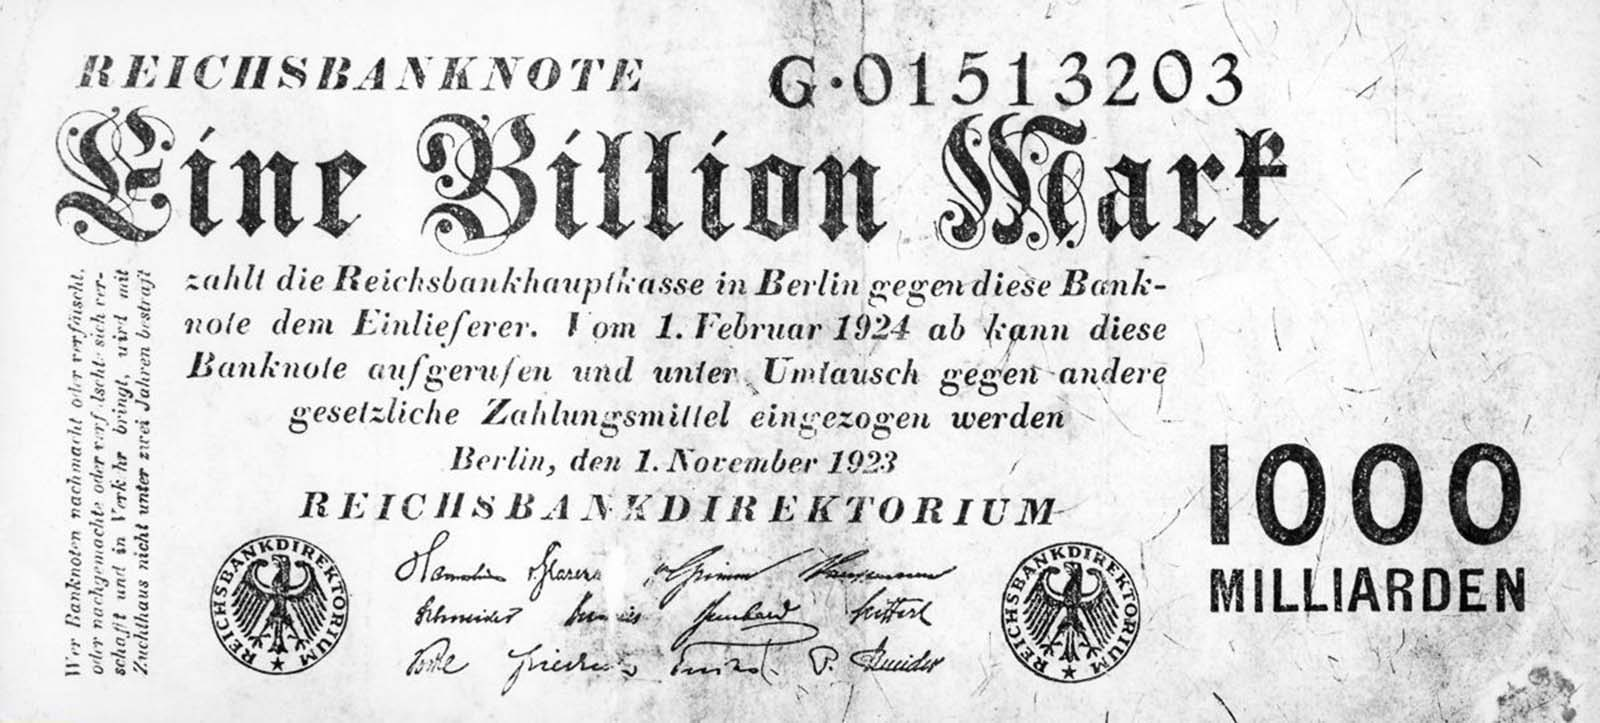 A one trillion mark note. 1923.